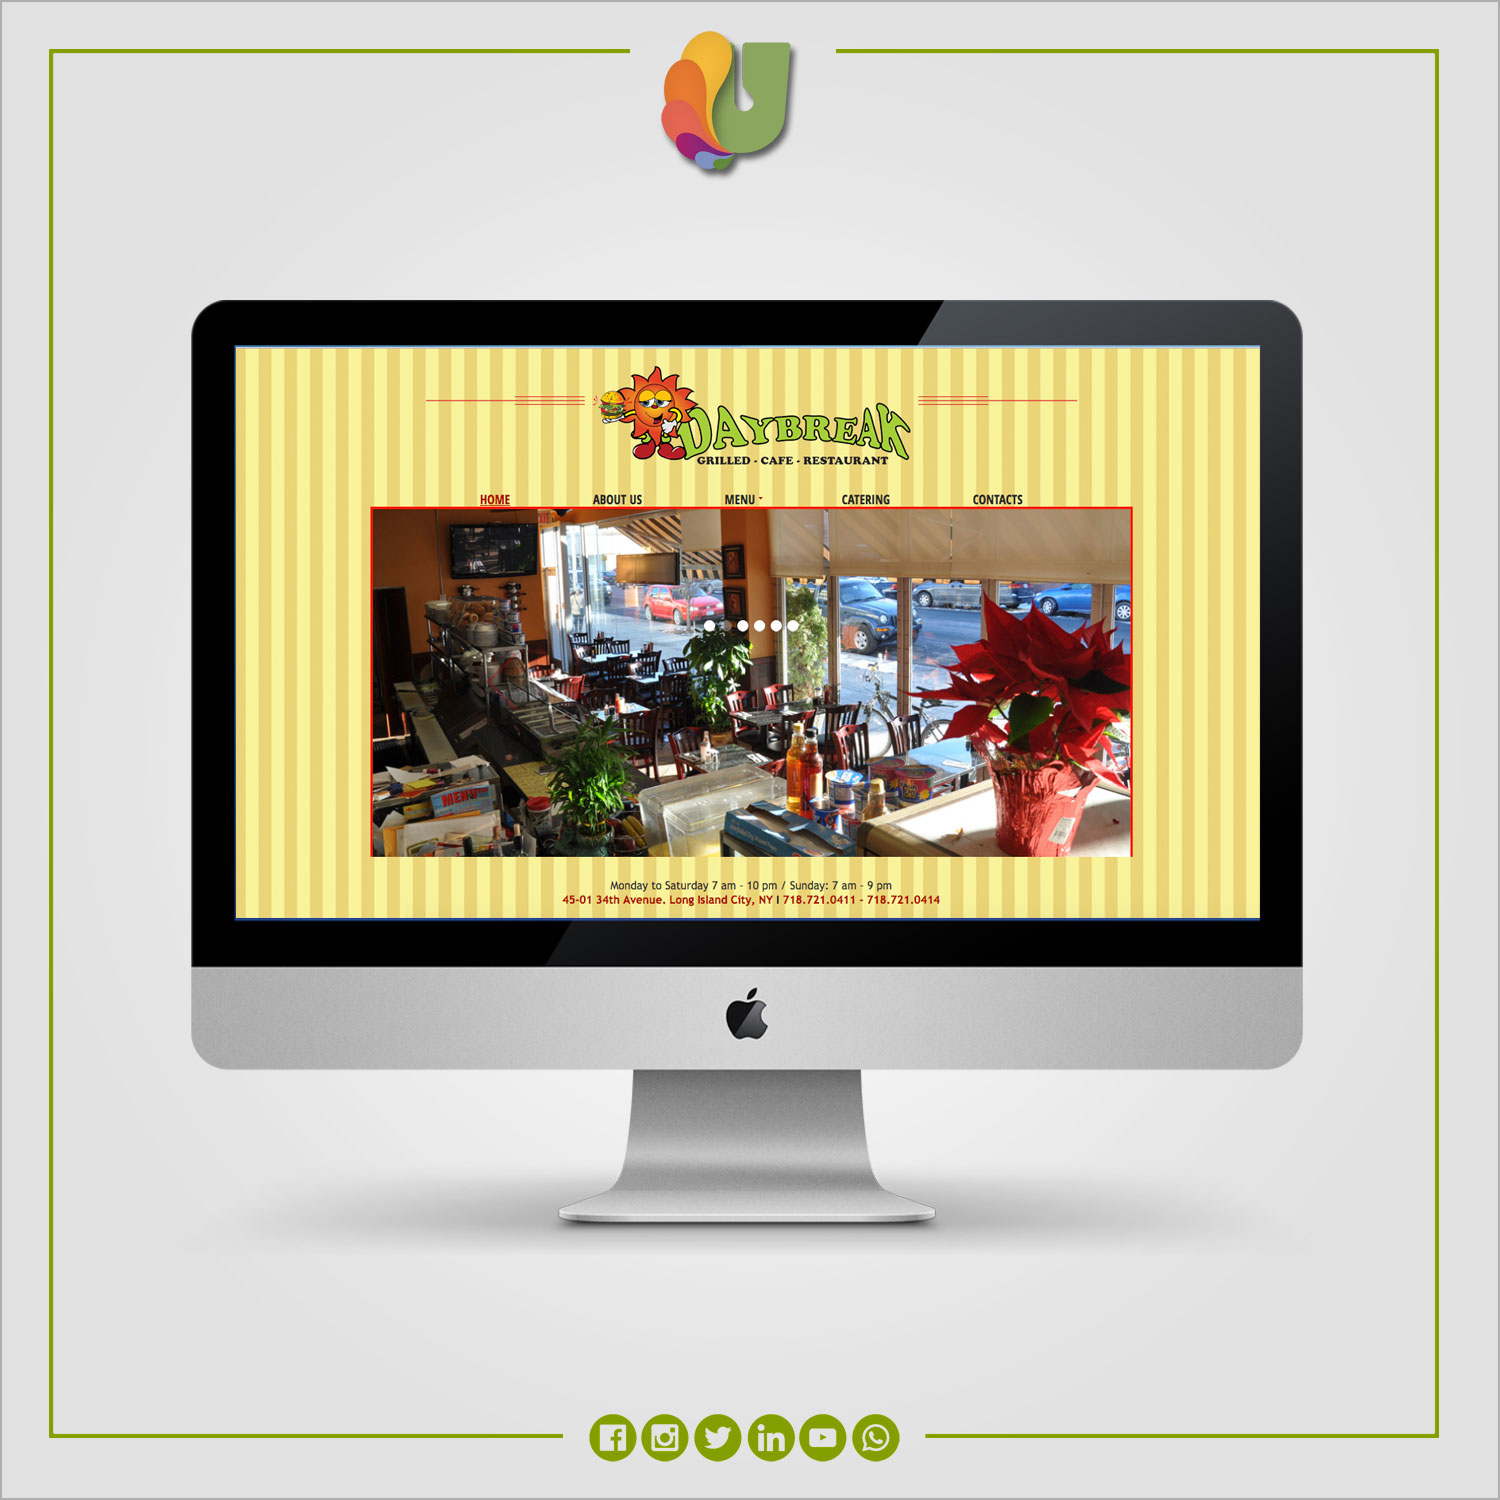 Daybreak Cafe / Website